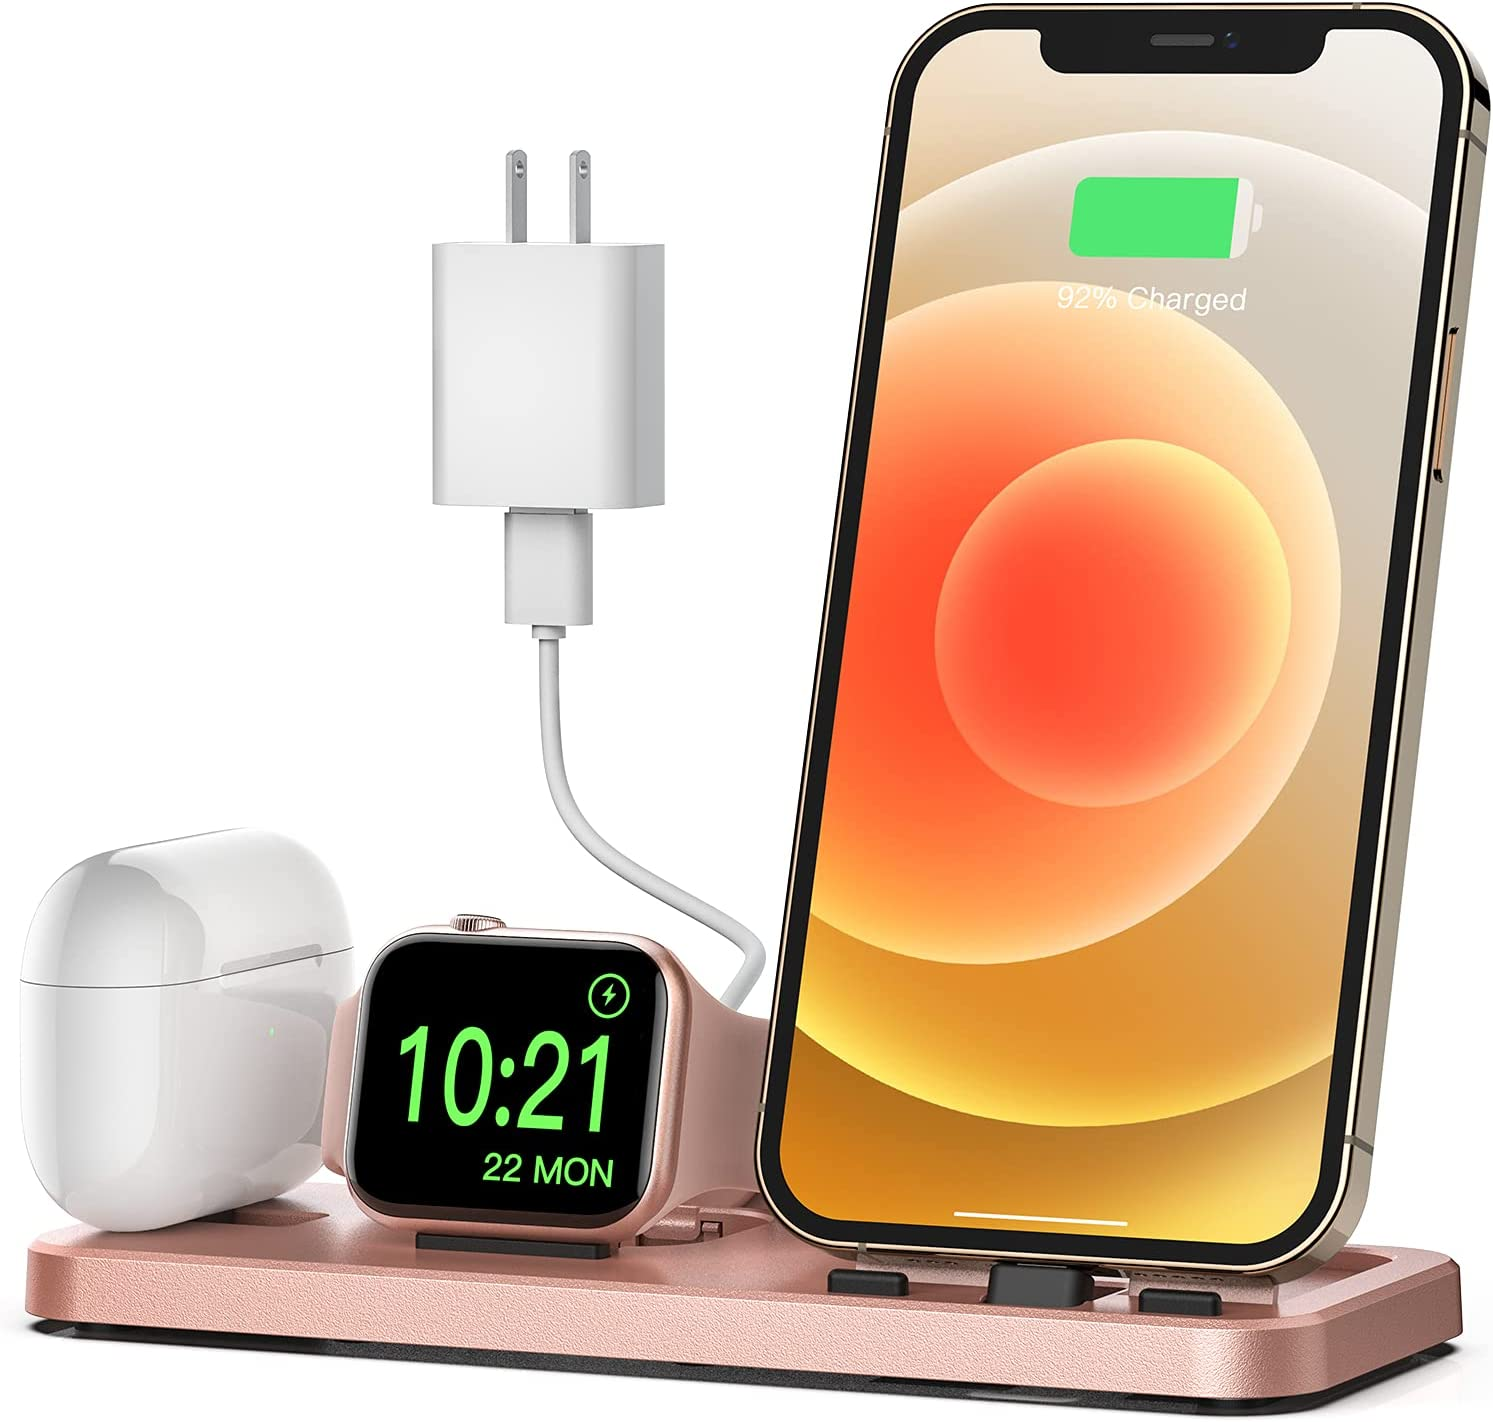 CEREECOO Portable 3 in 1 Charging Station for Apple Products Foldable Charger Stand for iWatch 6/SE/5/4/3/2/1 Charging Stand for iPhone AirPods Pro/2/1 Charging Dock Holder(with 10W Adapter)-Rose Gold